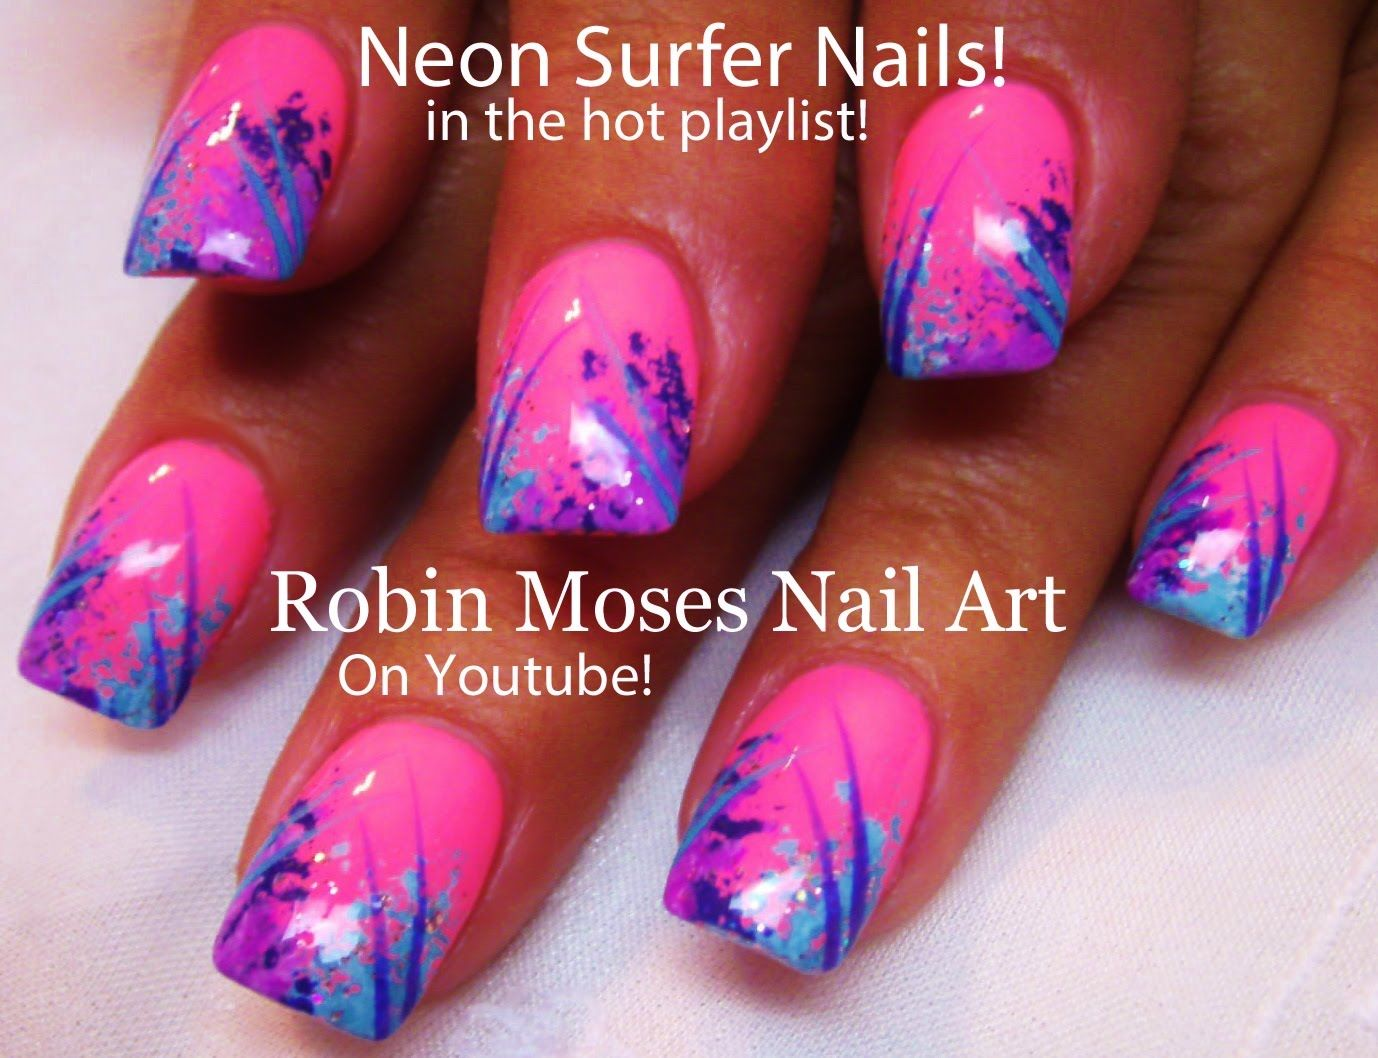 Easy Nail Art For Beginners! | DIY Nail Design | Sponge Surfer Nails ...